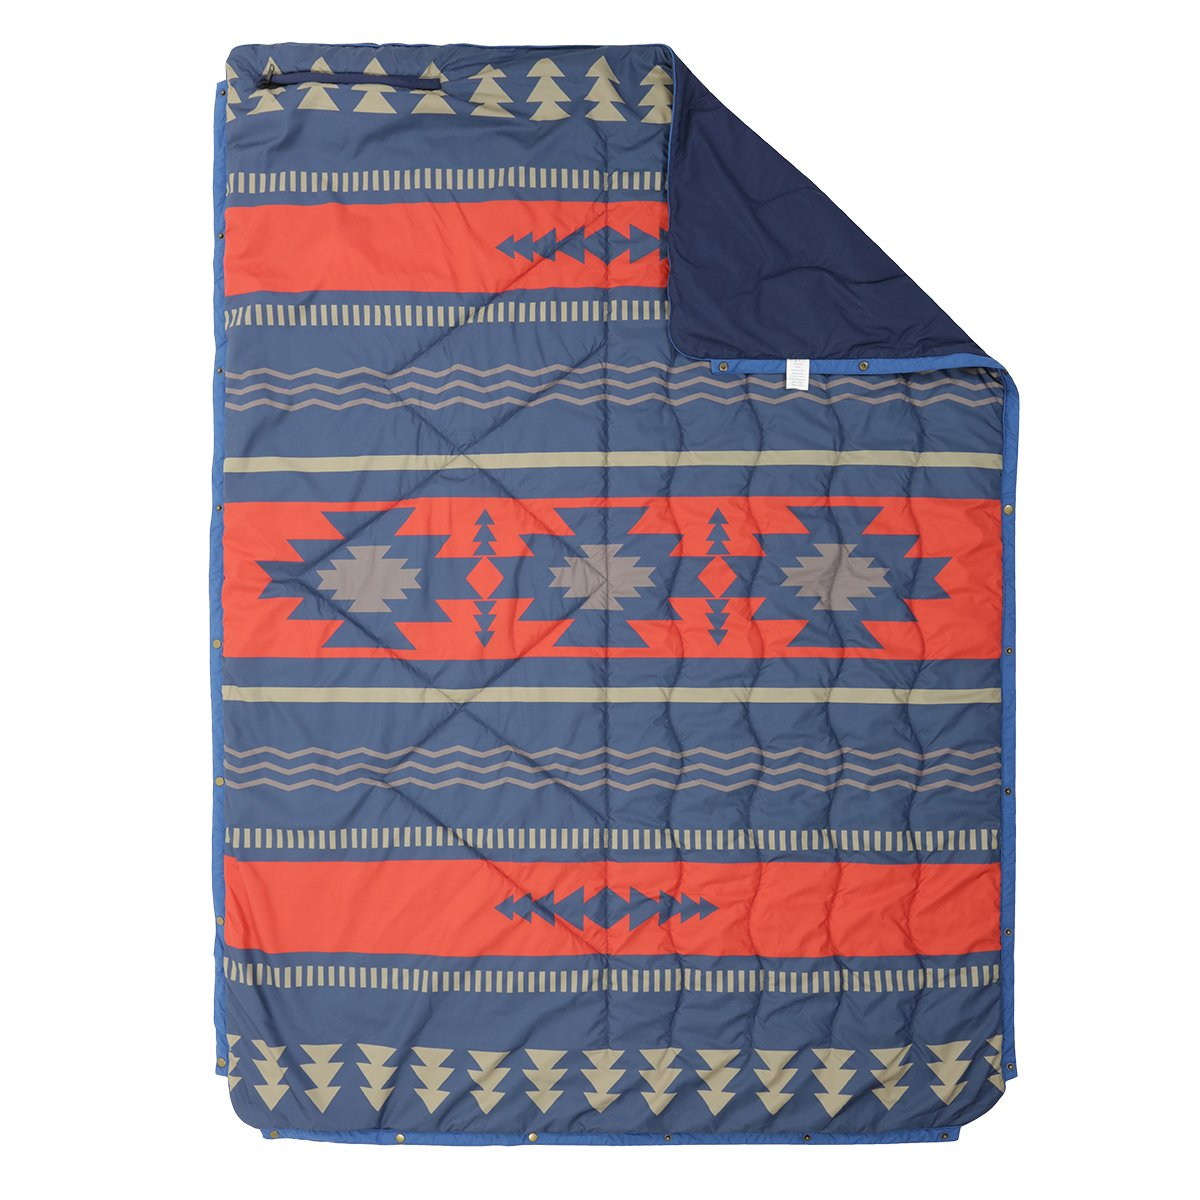 Nomadics 1 Person Insulated Blanket - Navy/Red image 2